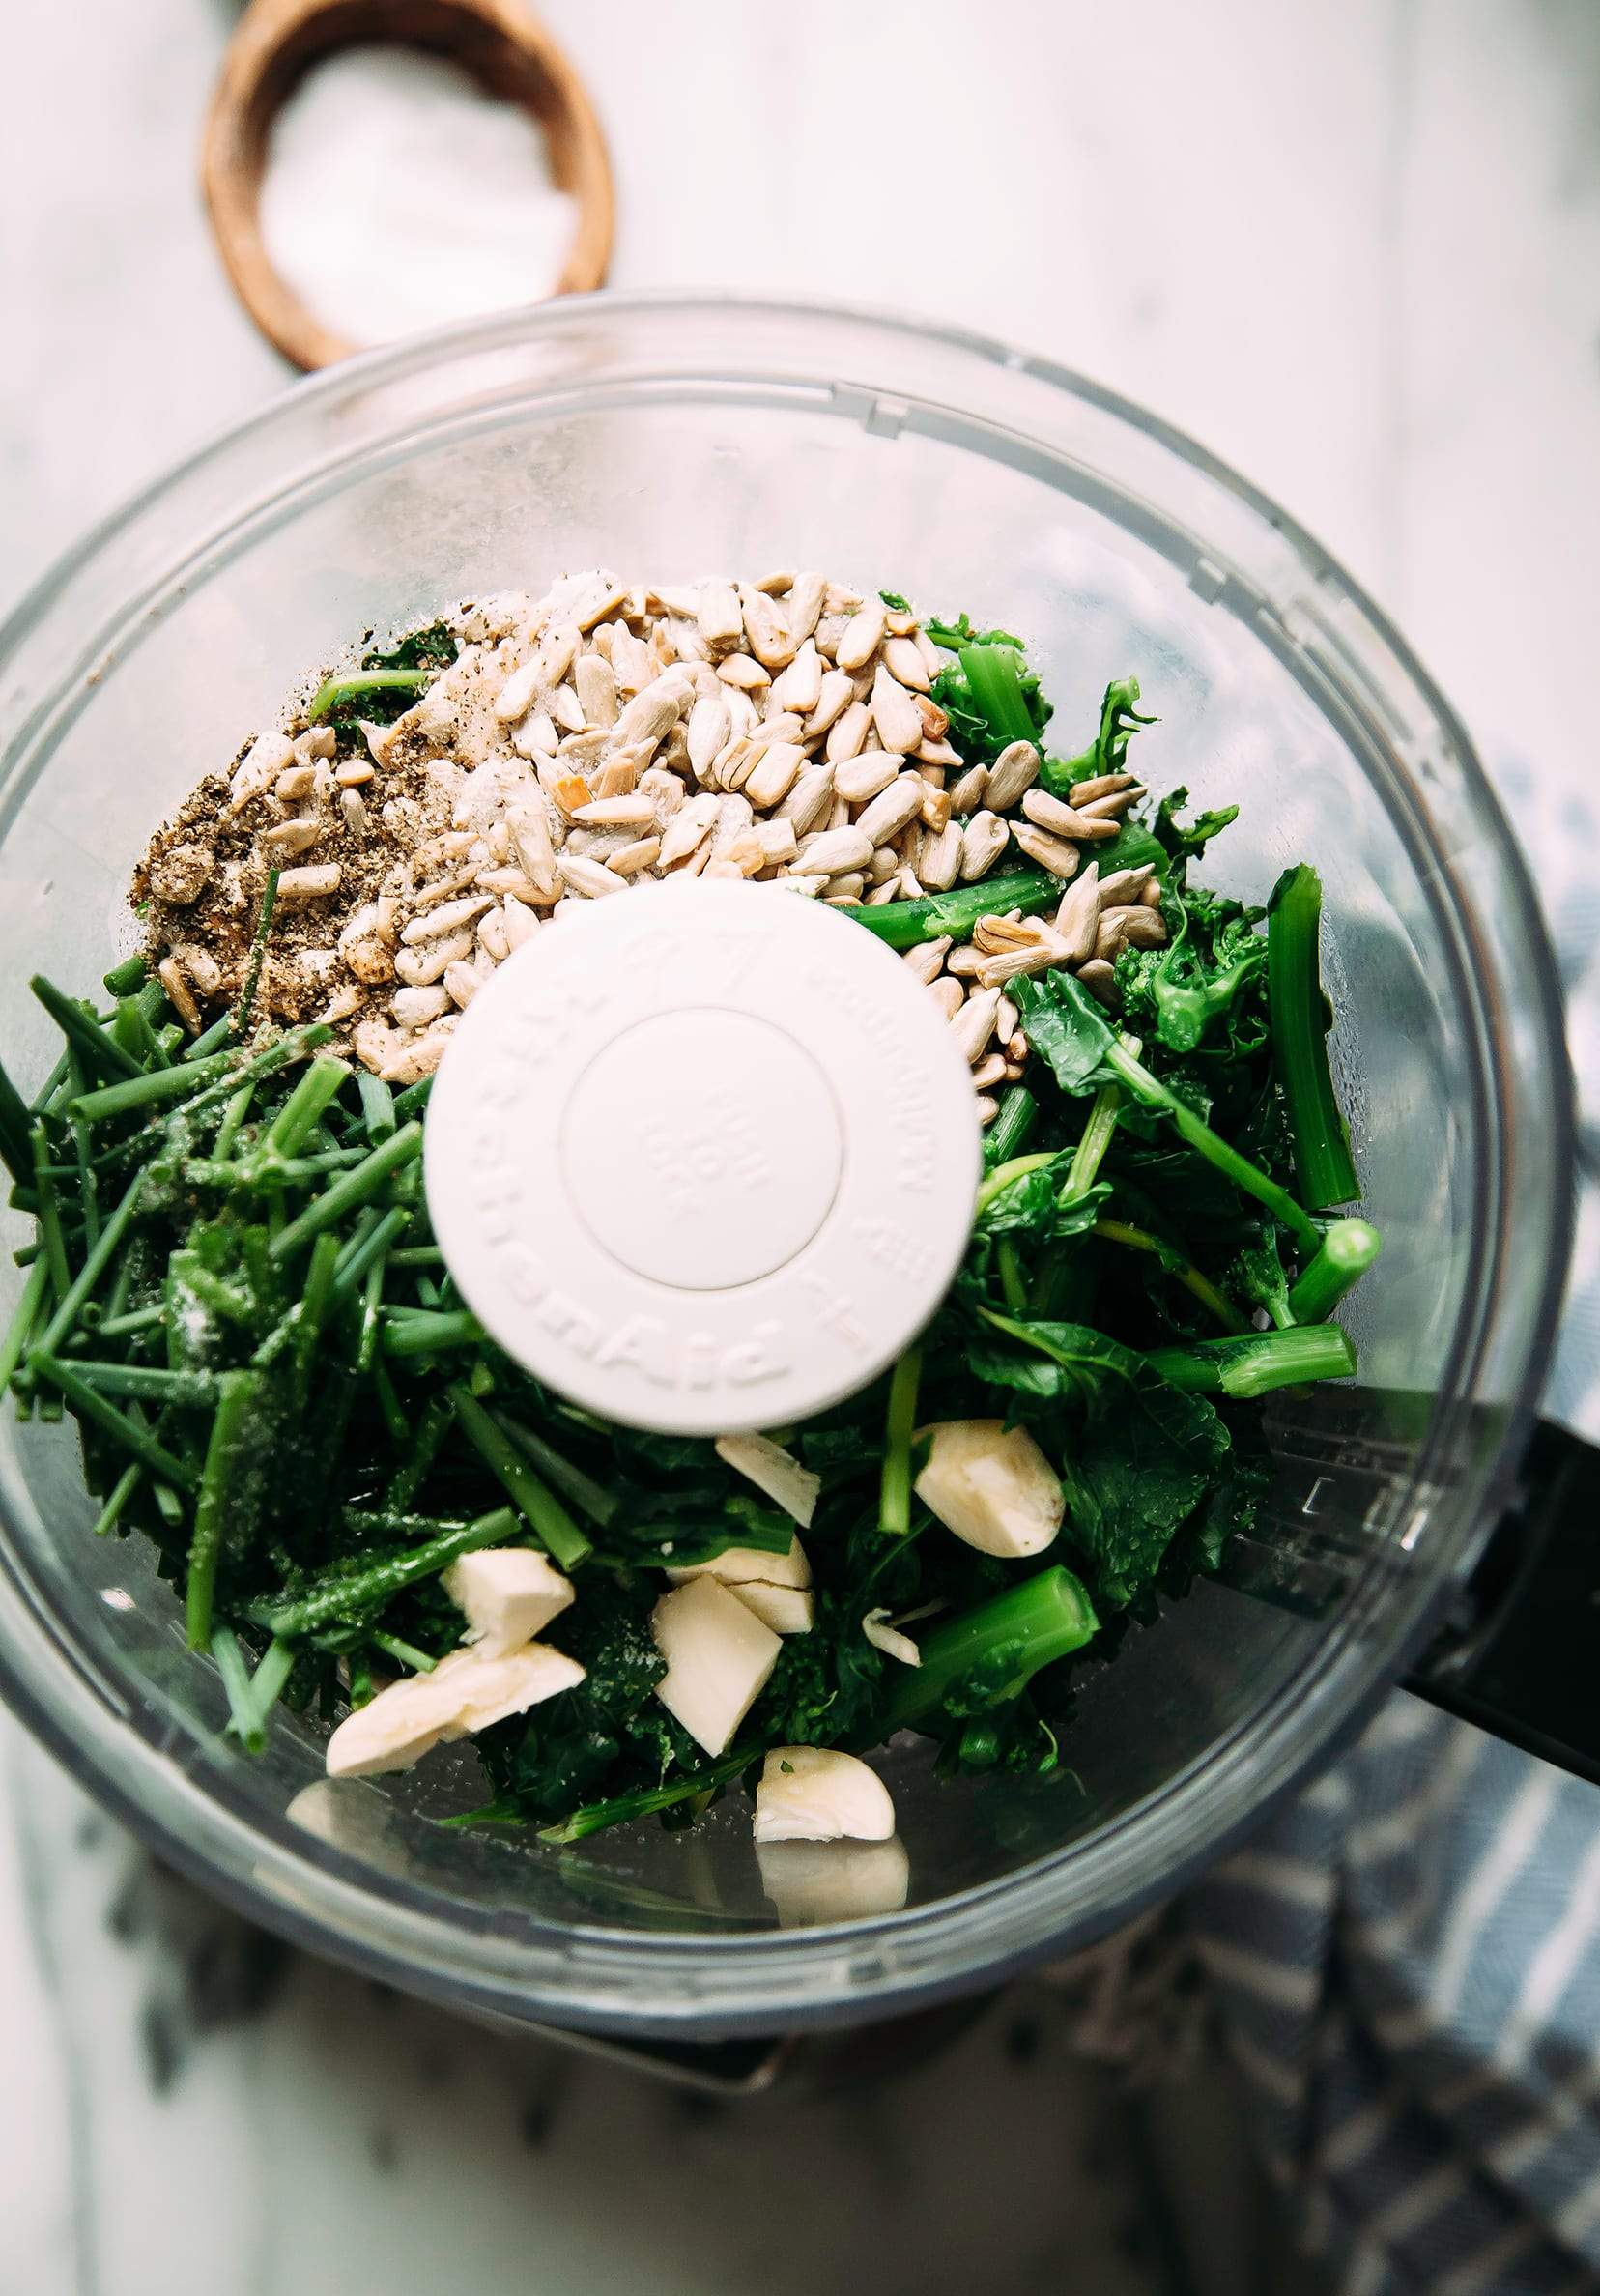 Image shows a food processor filled with ingredients for a broccoli rabe and chive pesto.